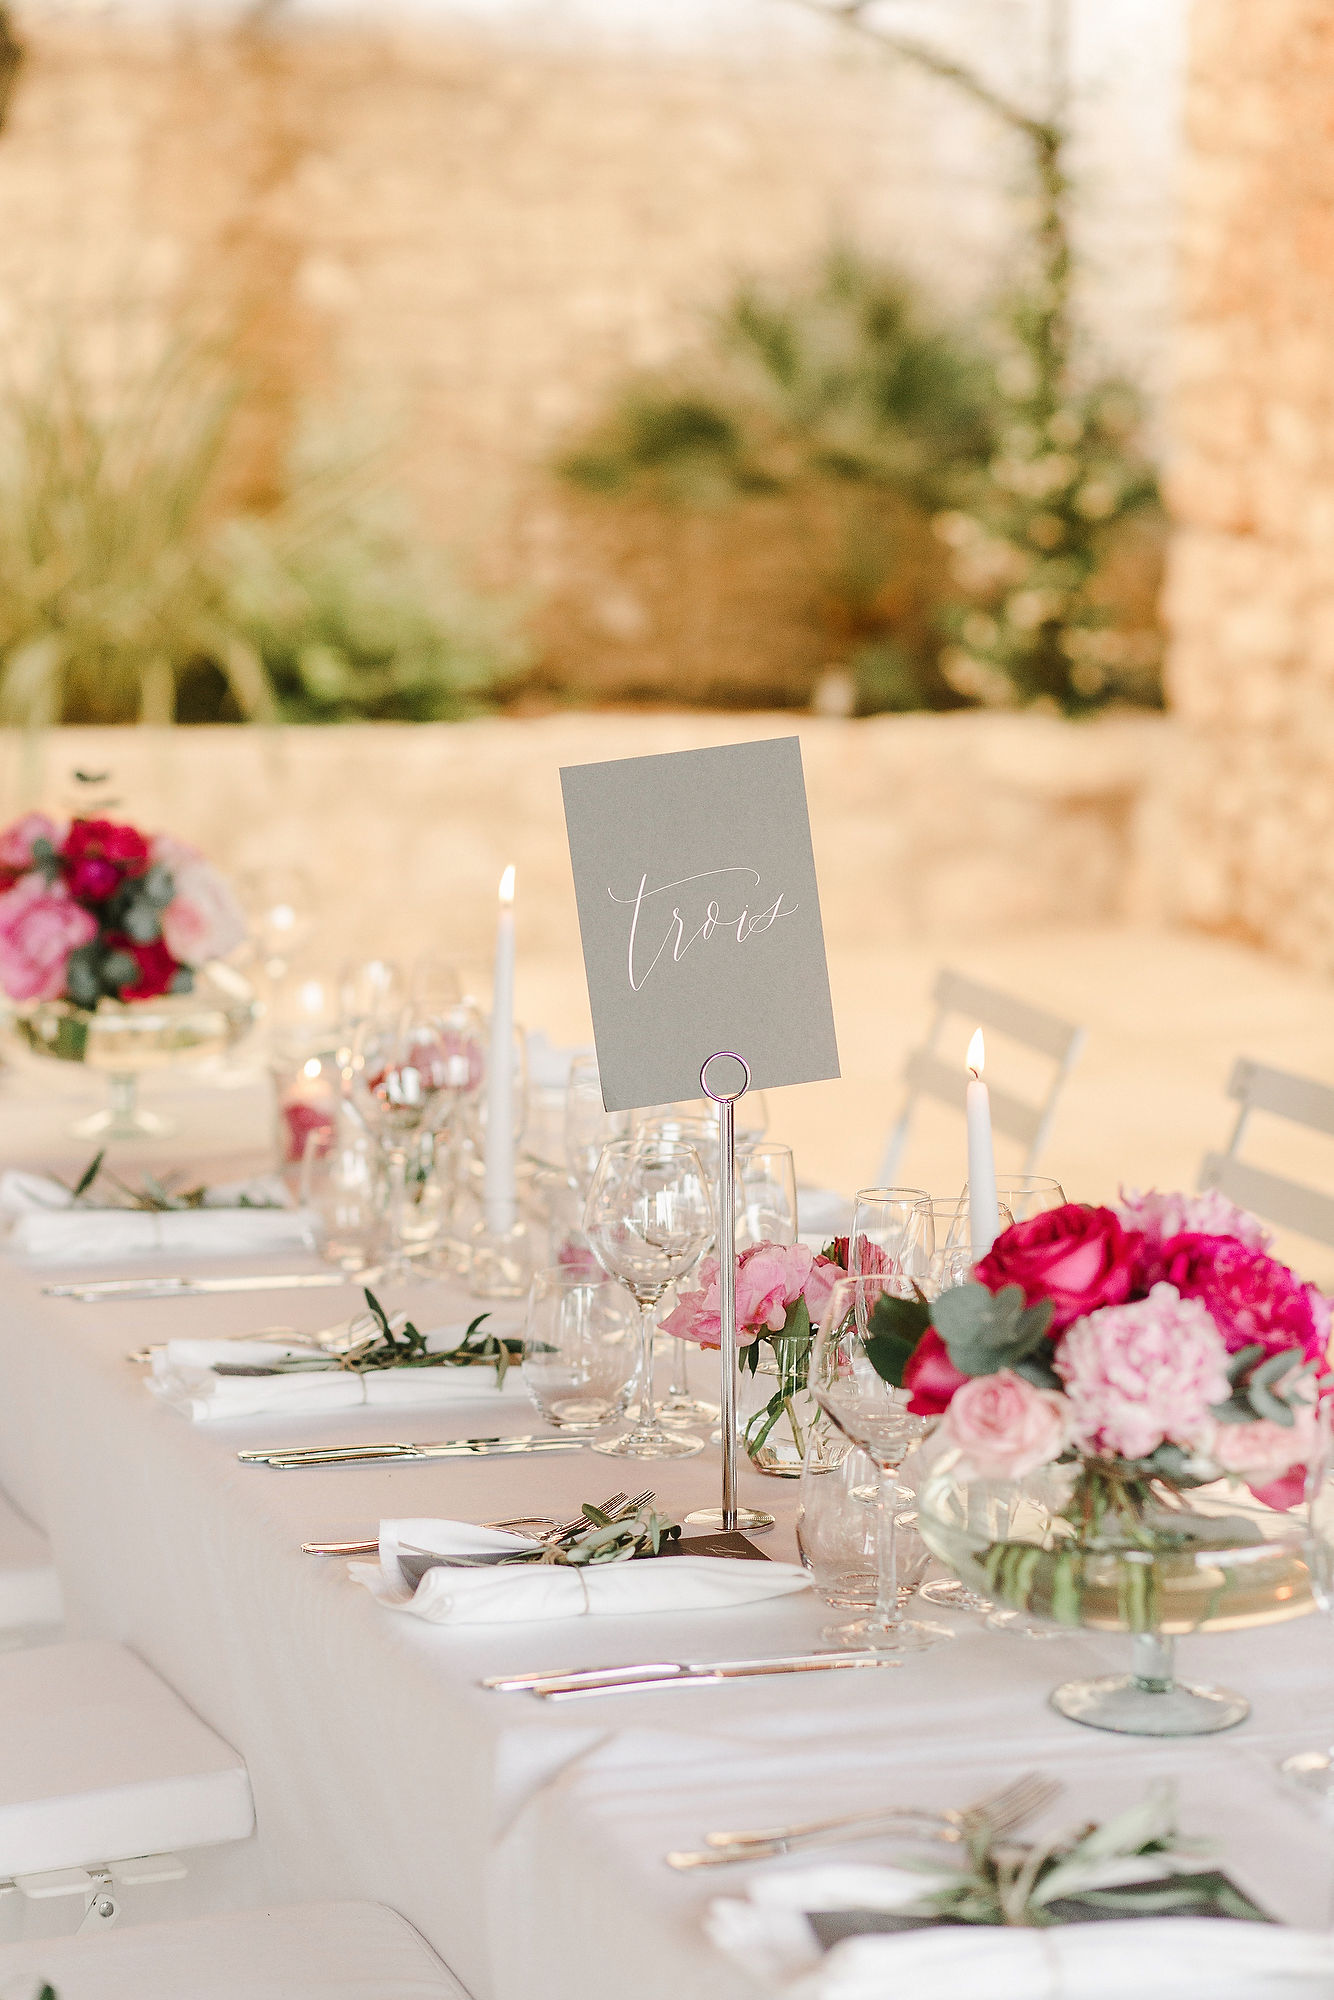 wedding_calligraphy_table_number.jpg